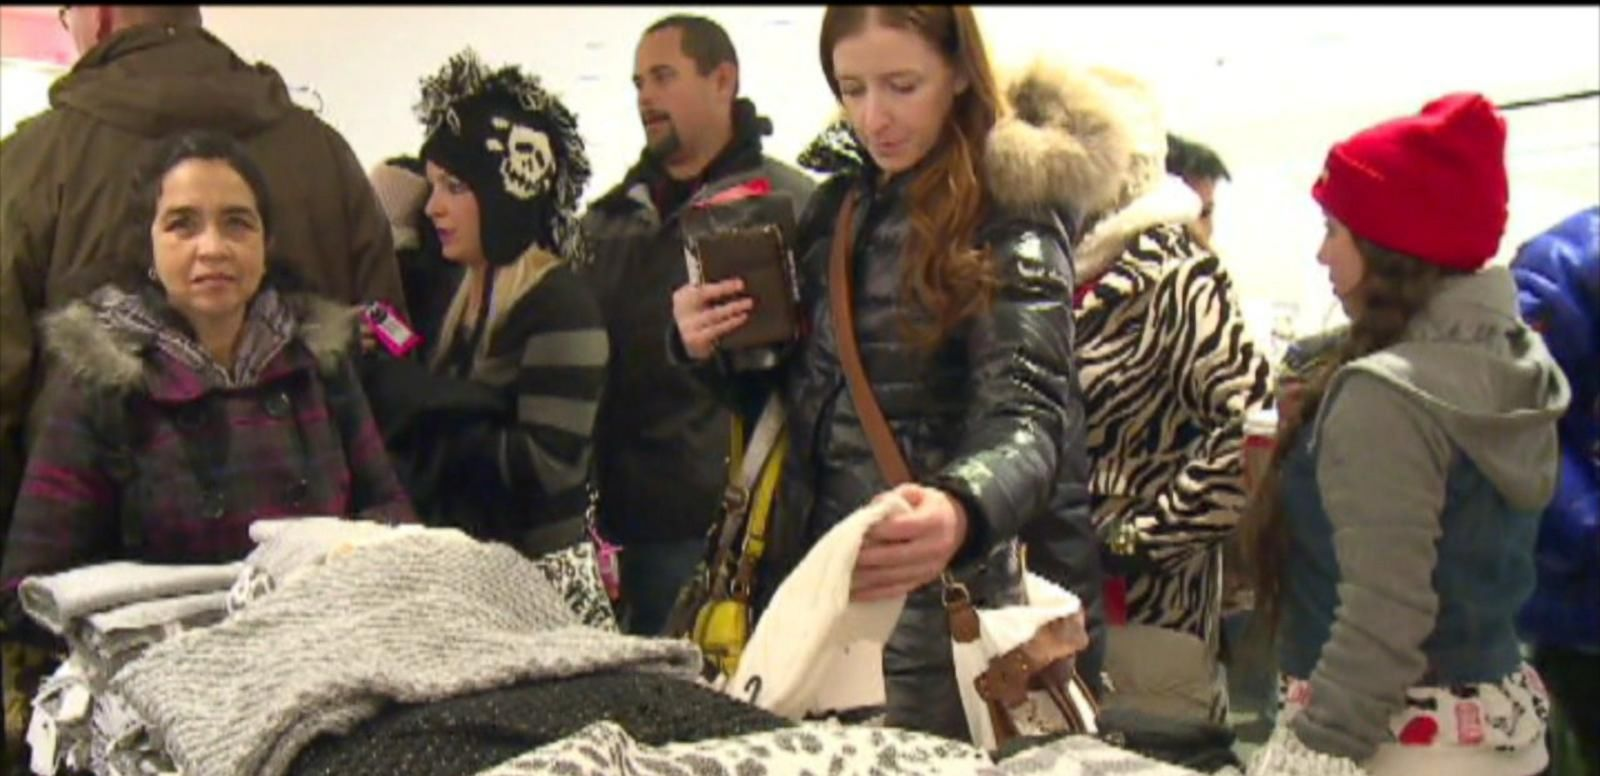 VIDEO: The Madness of Last Minute Gift Shopping